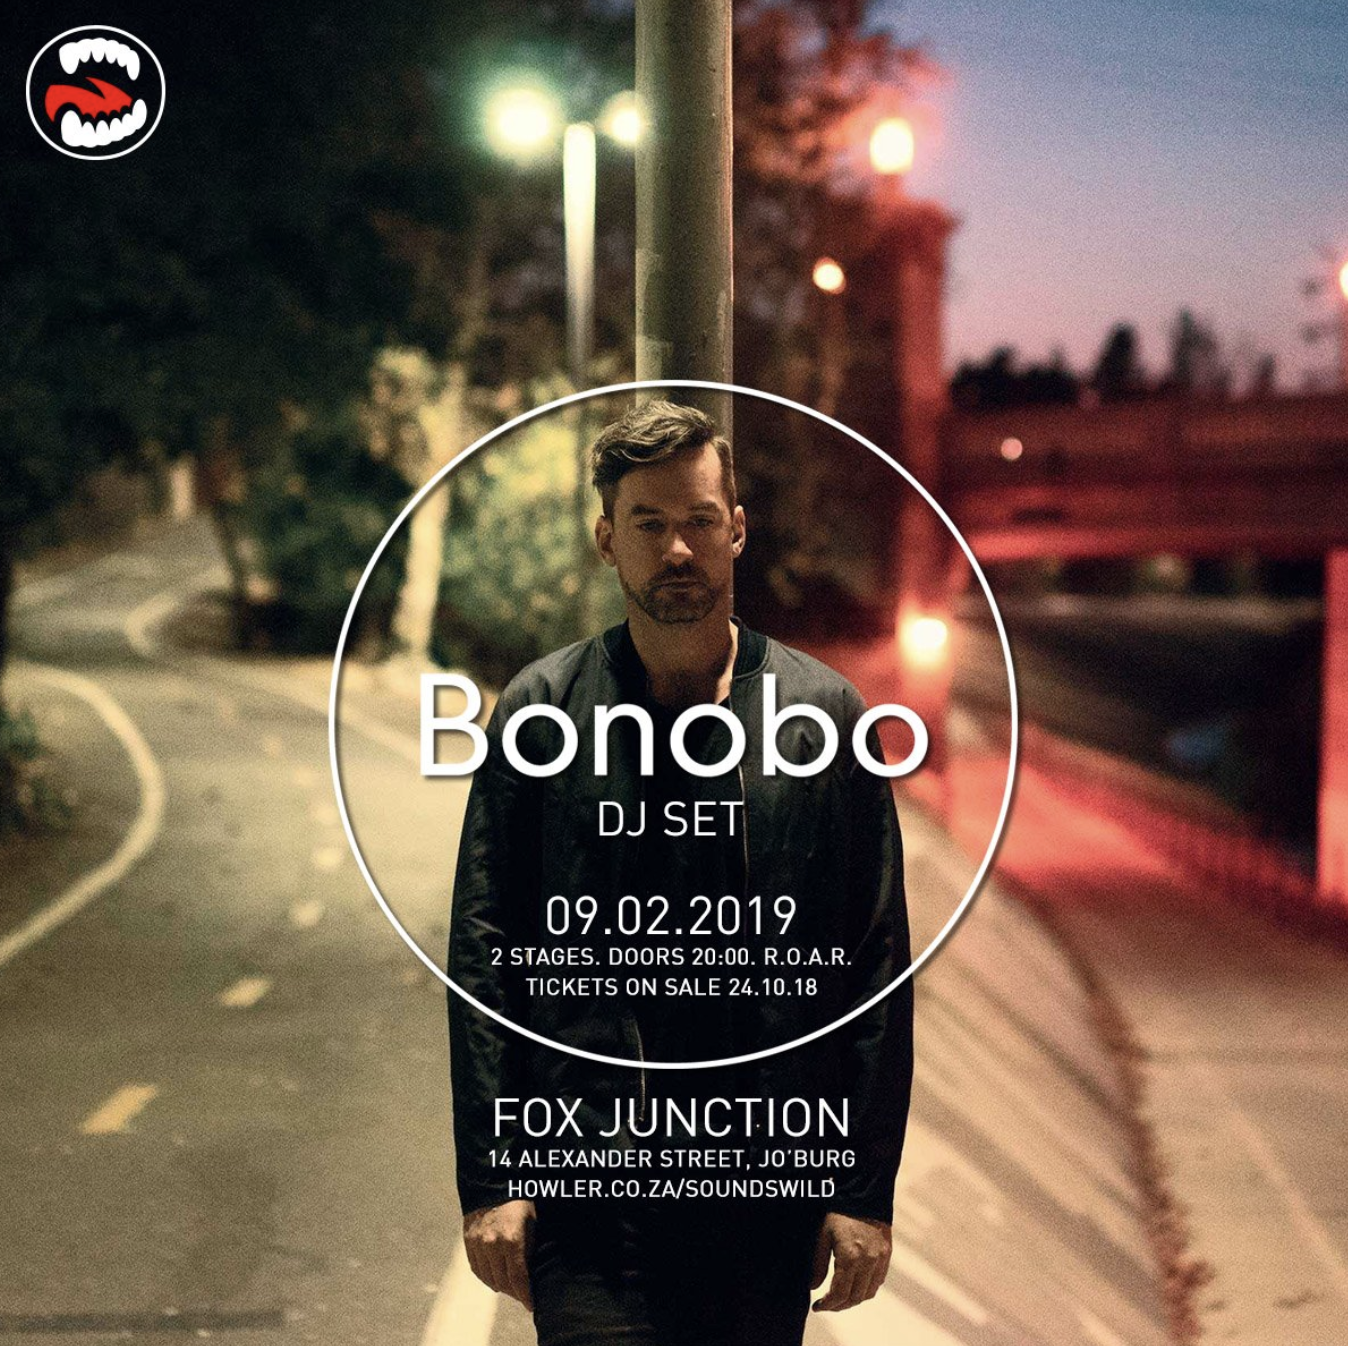 The music God's have heard our cries and have finally brought Bonobo to our shores.    Bonobo , is a British musician, producer and DJ based in LA He initially debuted with a trip hop aesthetic, and has since explored more upbeat approaches while experimenting with jazz and world music . His electronic sound incorporates the use of organic instrumentation, and is recreated by a full band during his live performances.  Green's work has given him a cult following. He has collaborated with various artists, and has also recorded and performed under the name Mr Blue and with Robert Luis from Tru Thoughts as Nirobi and Barakas.